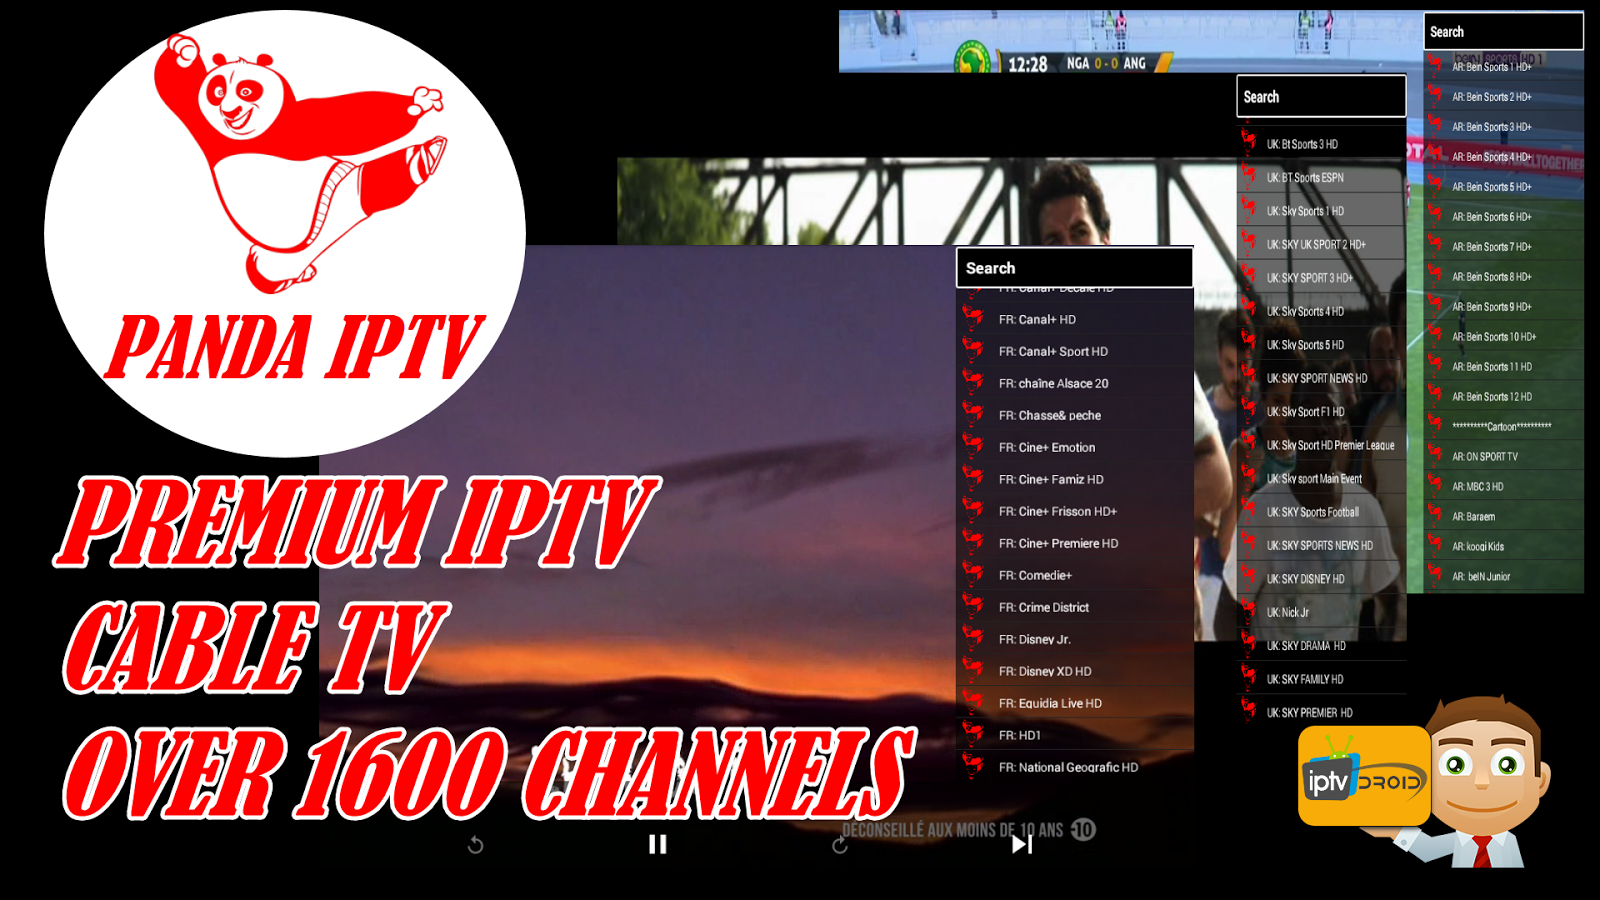 PANDA IPTV: PREMIUM IPTV APK + OVER 1600 CHANNELS + ACTIVATION CODE